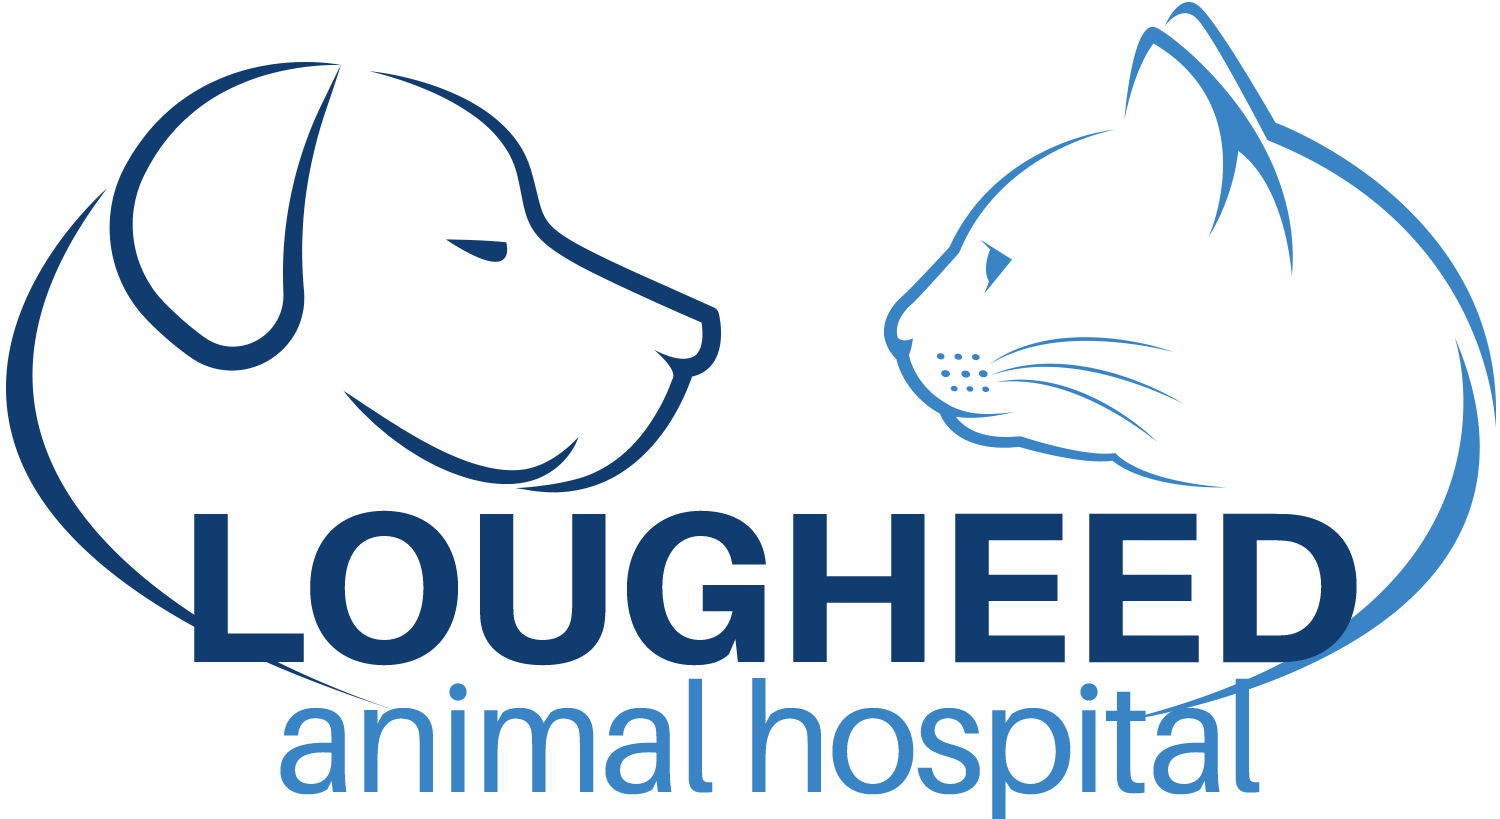 Lougheed Animal Hospital